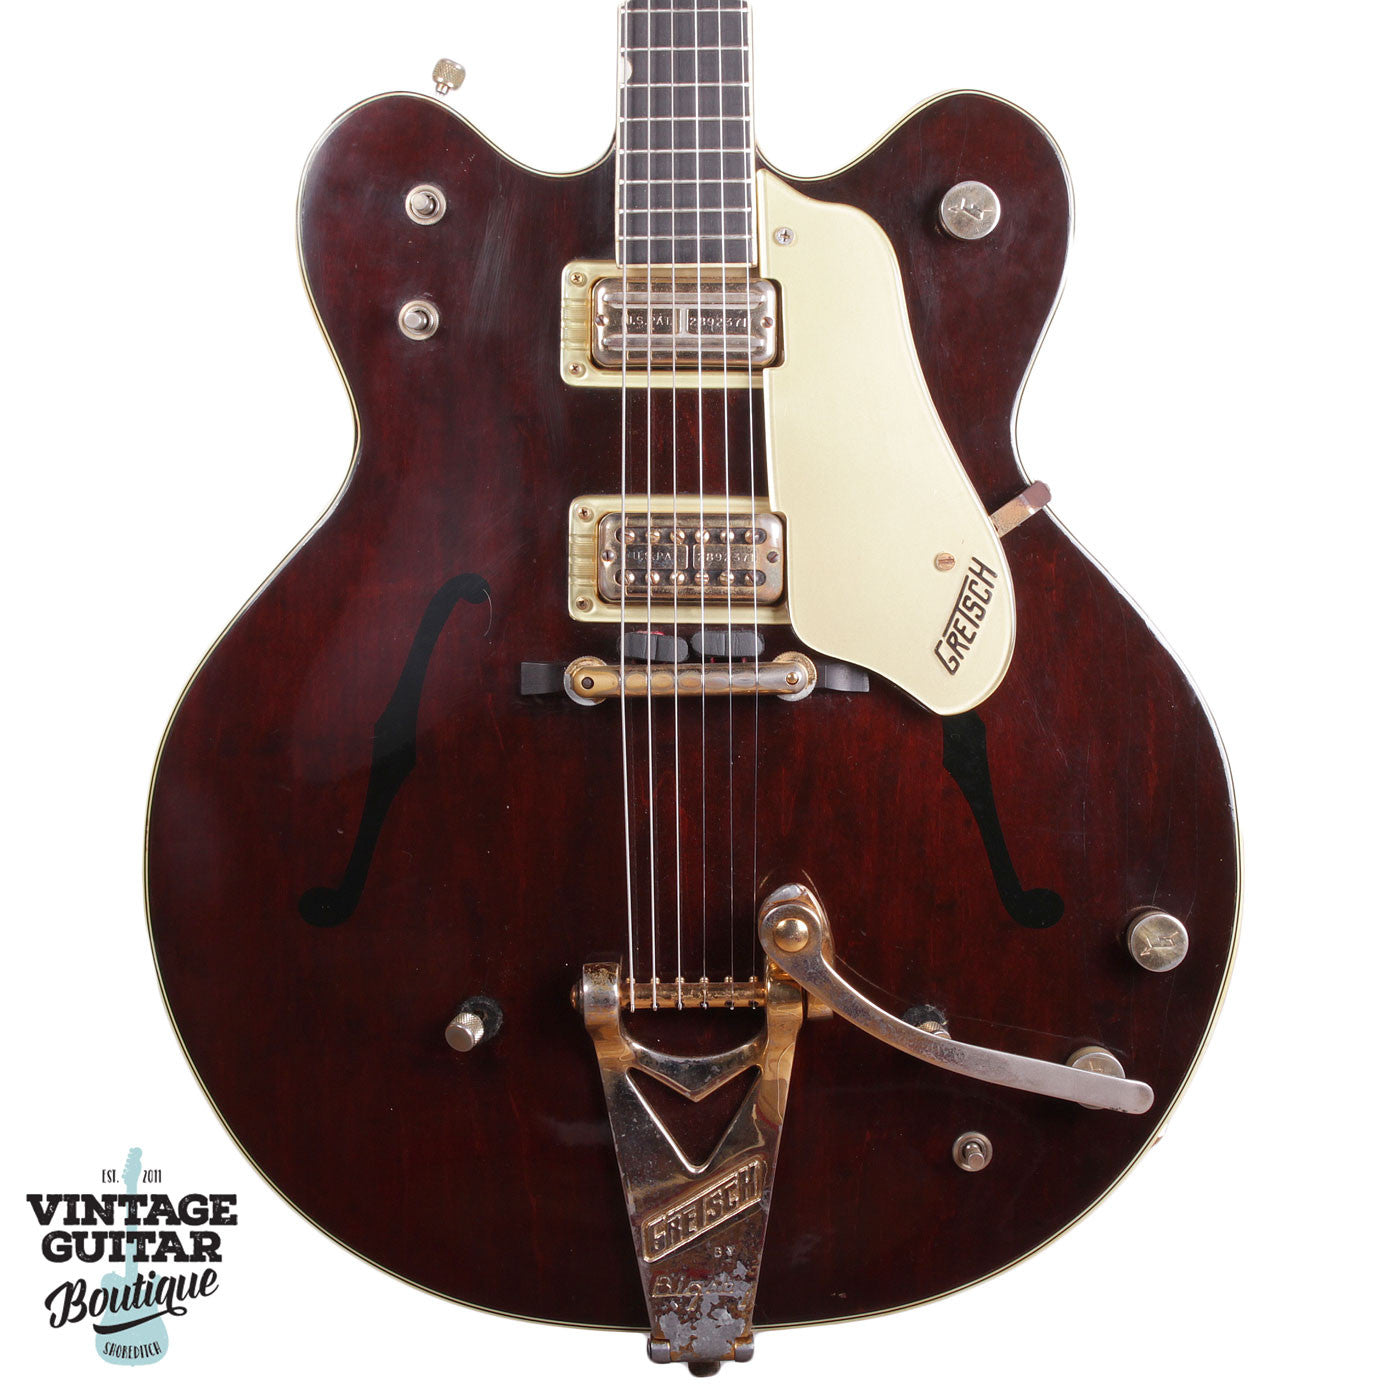 1964 Gretsch Country Gentleman - Walnut - Vintage Guitar Boutique - 1